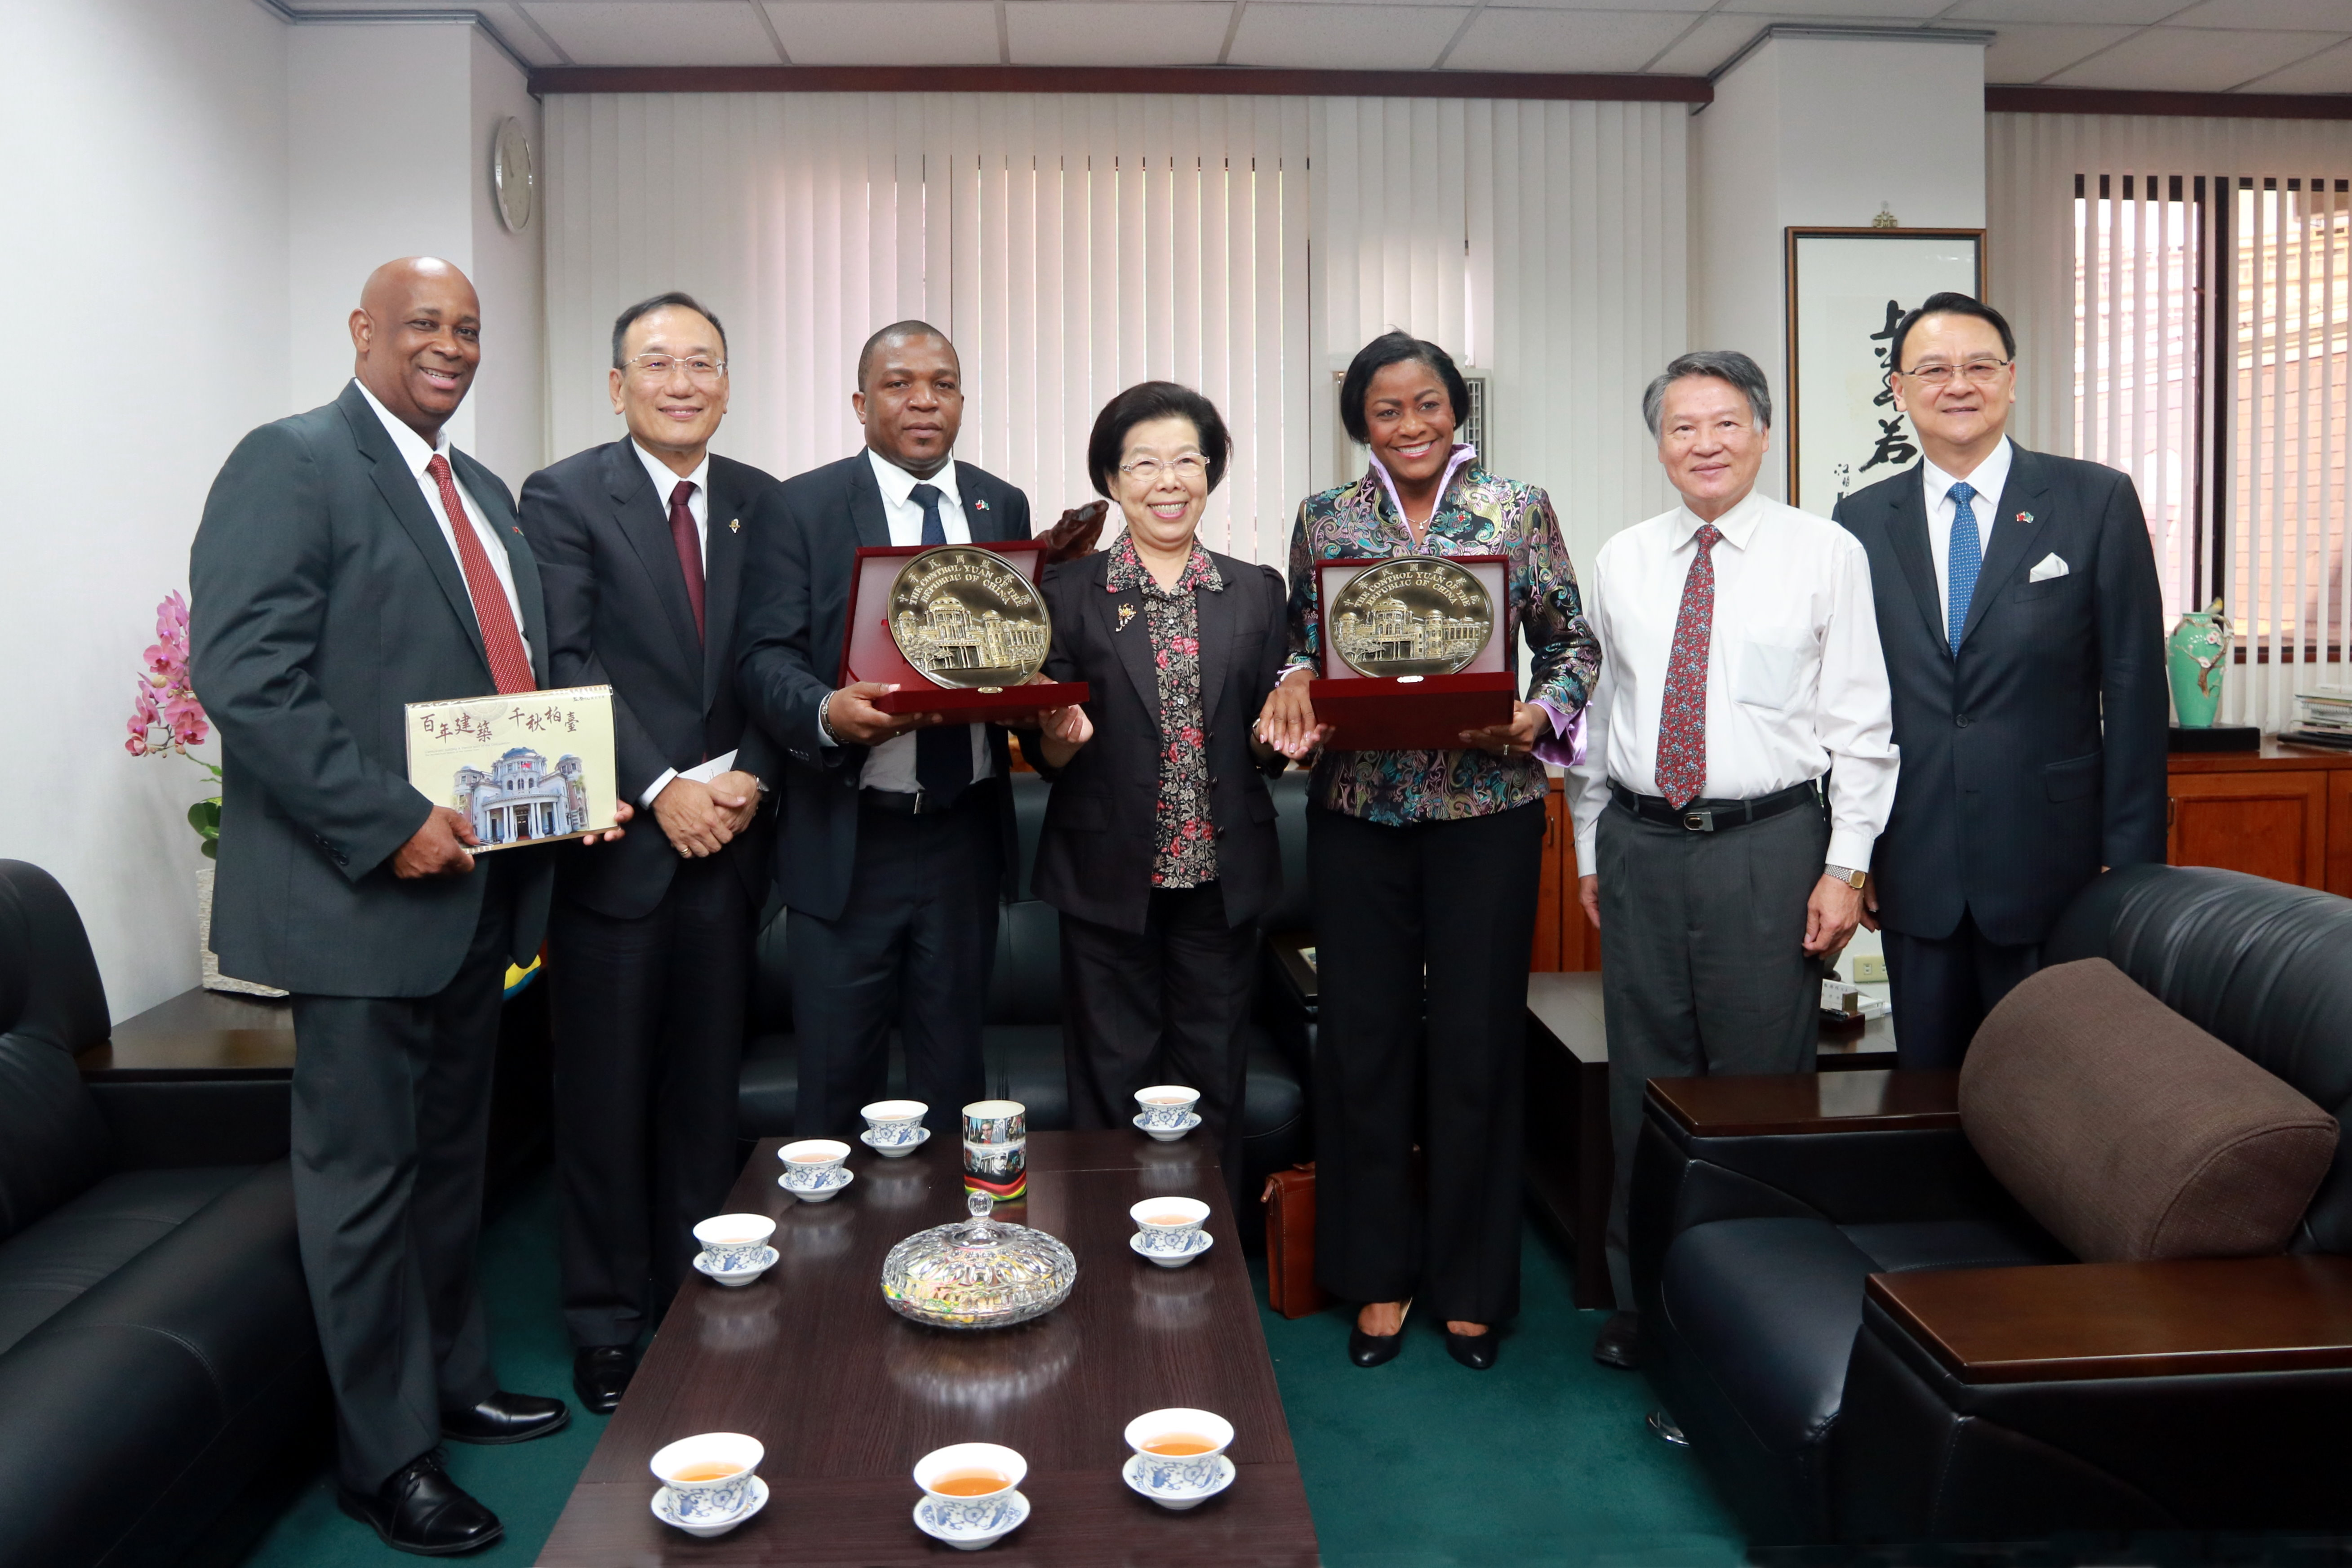 St. Lucia Senate President and House Assembly Speaker Visit Control Yuan